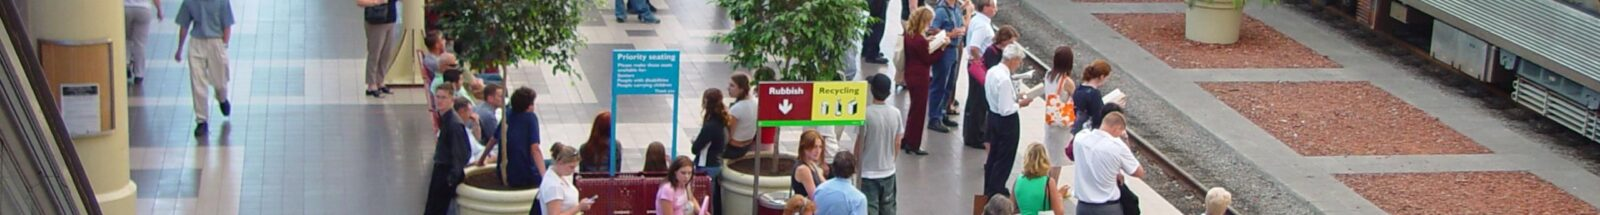 Crowd_waiting_for_train_Perth_city_station